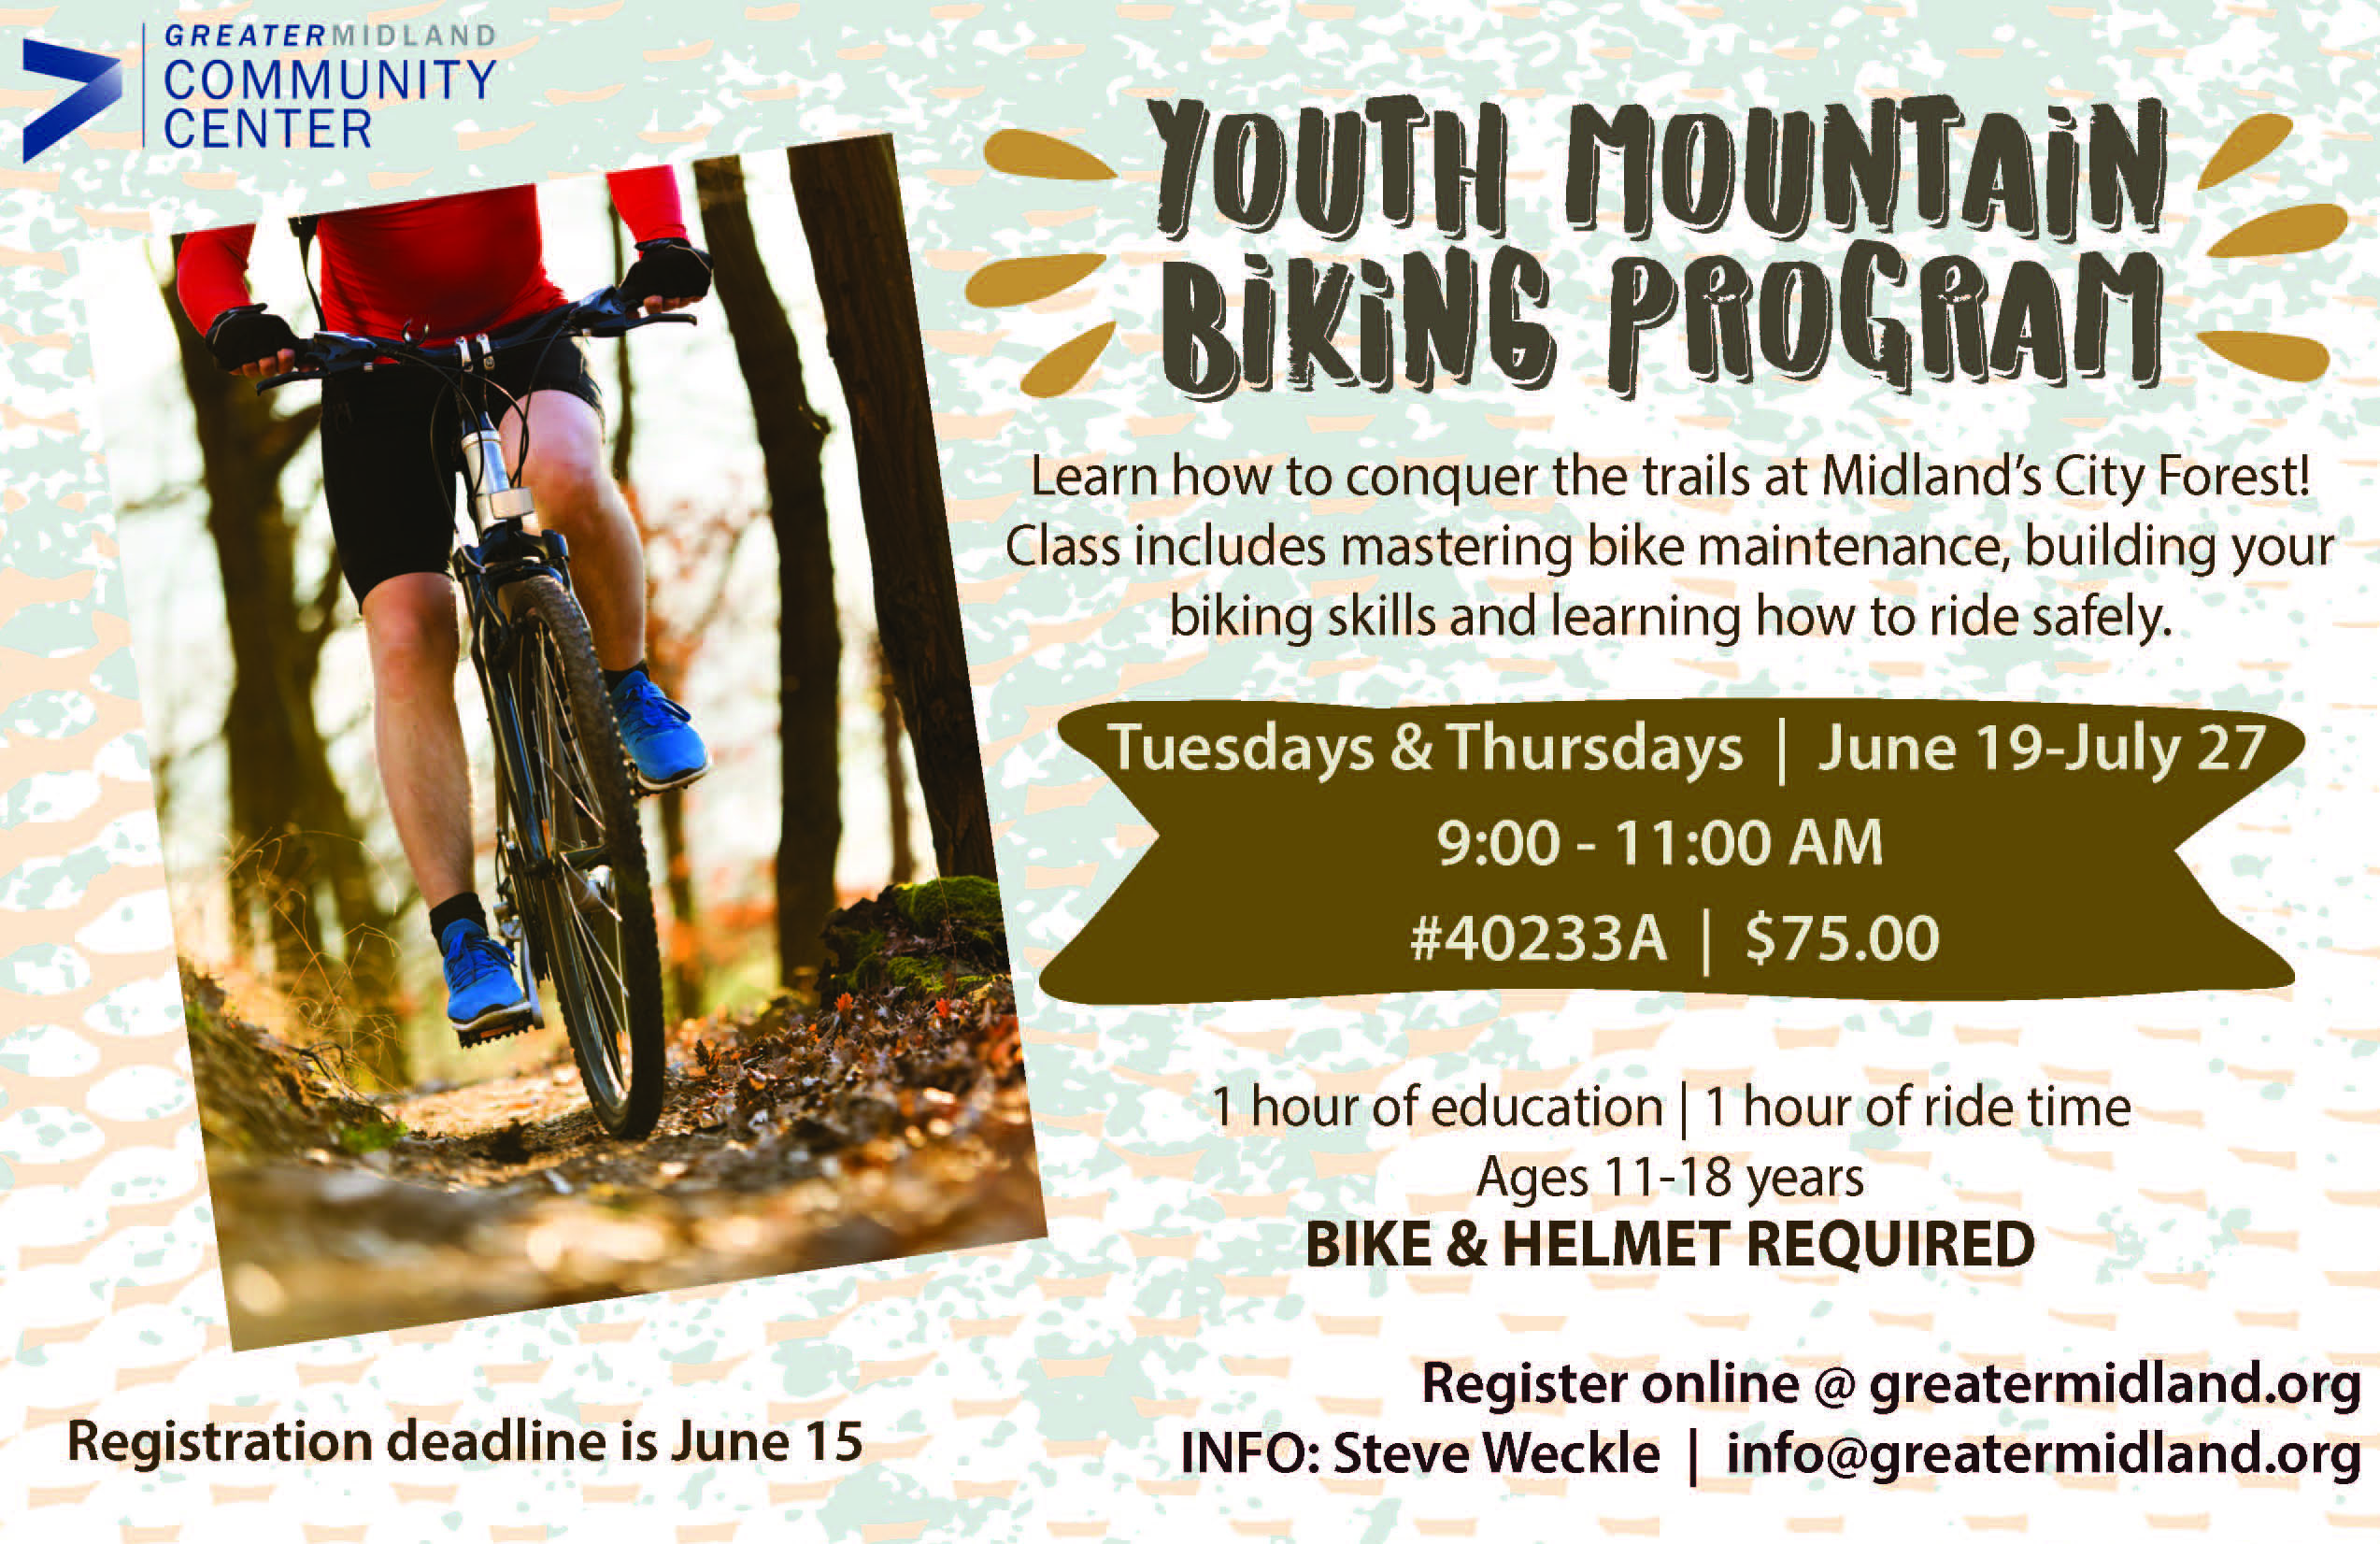 Youth Mountain Bike Program